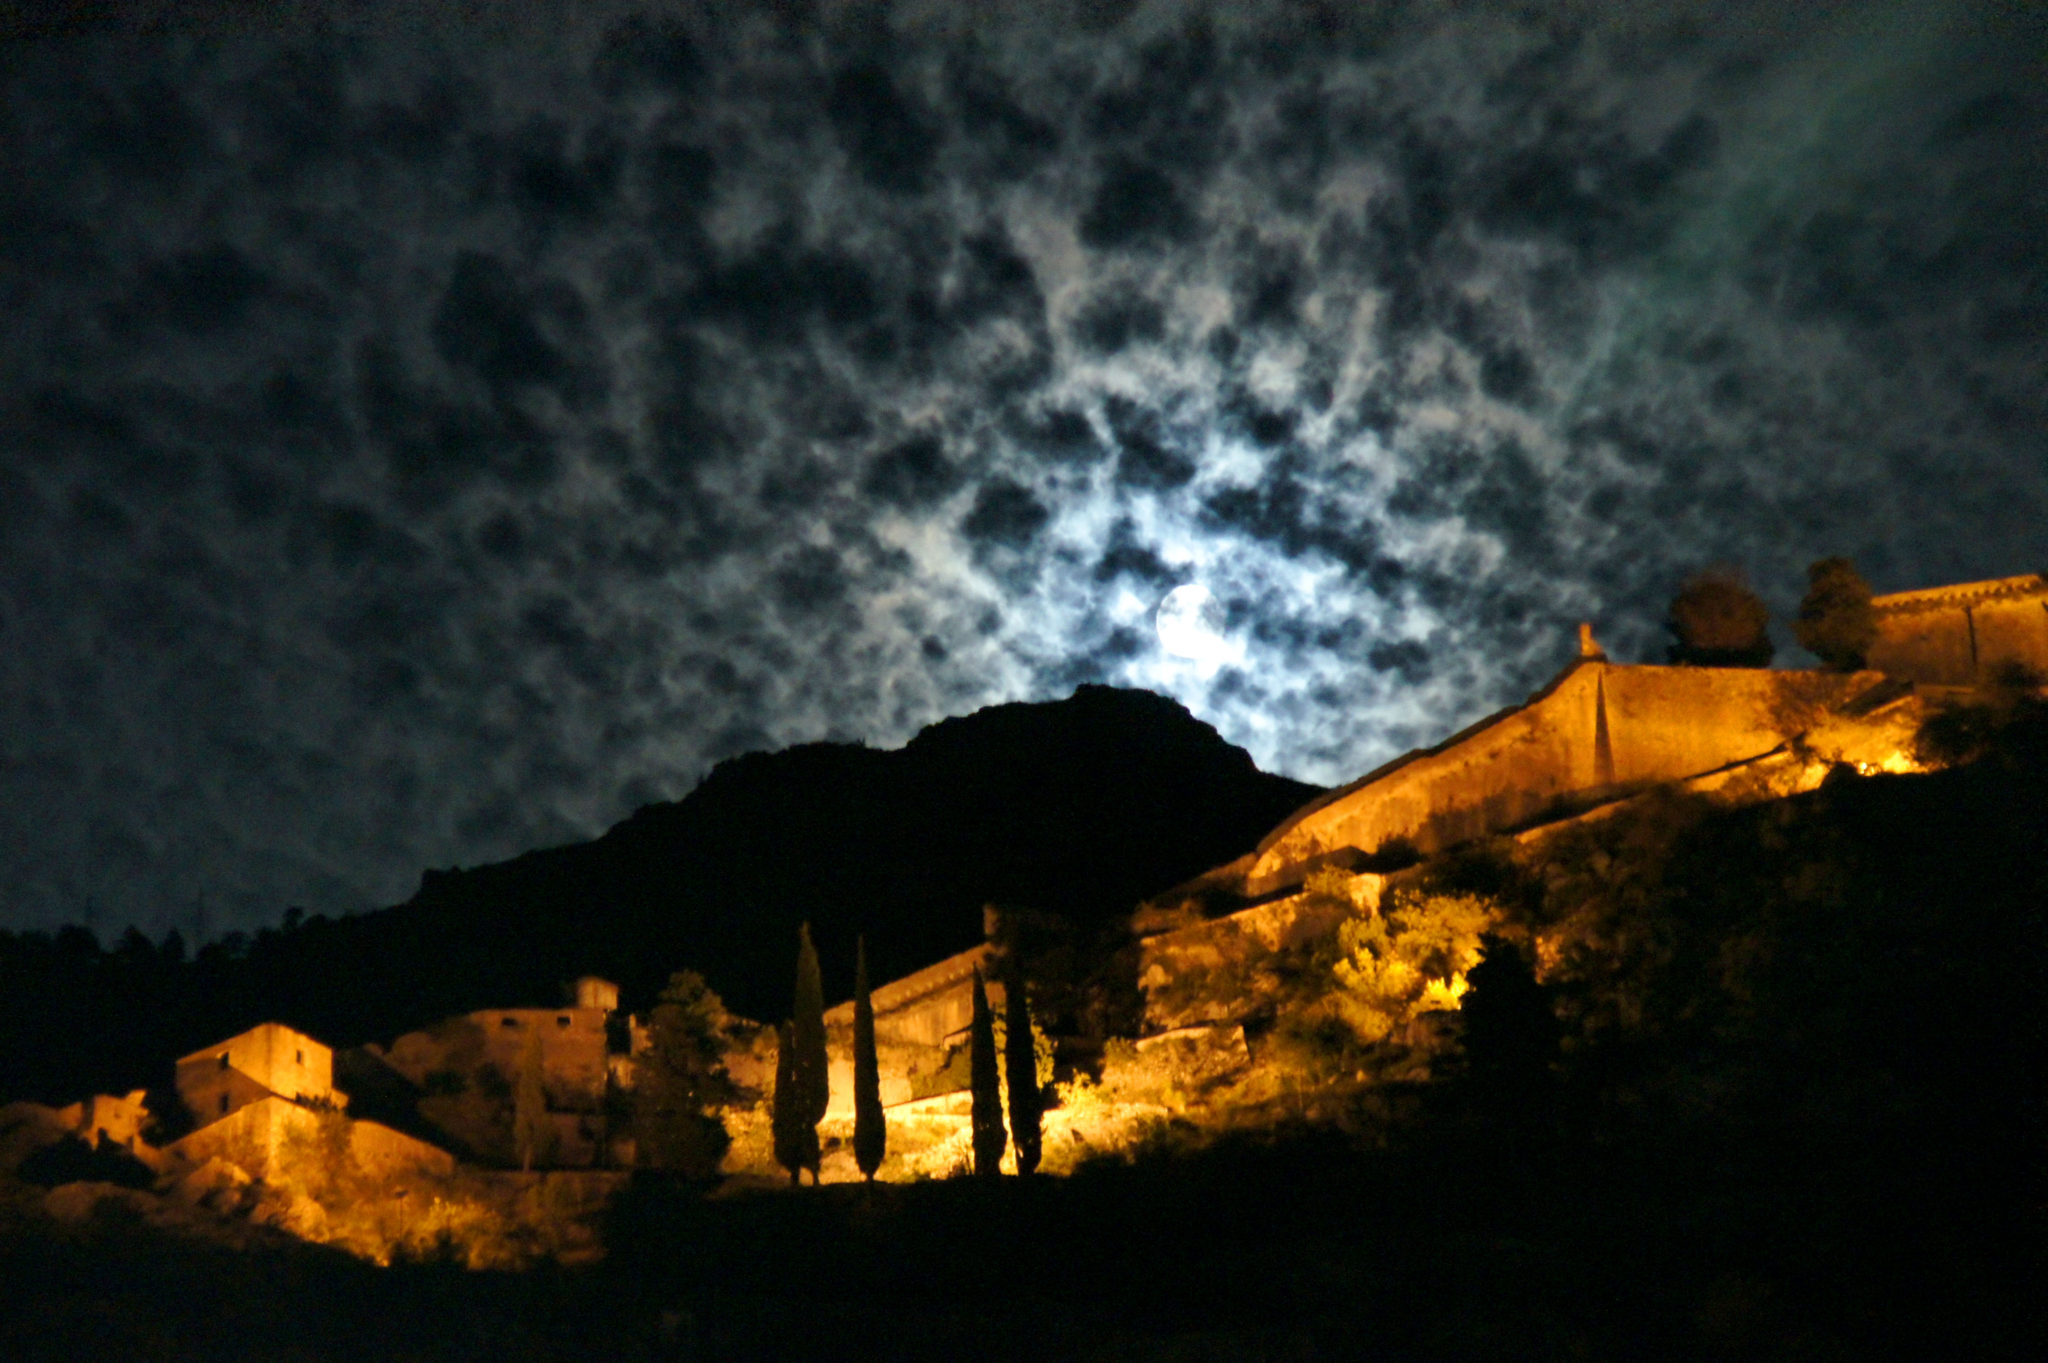 hema_montenegro_kotor_fortress_by_night